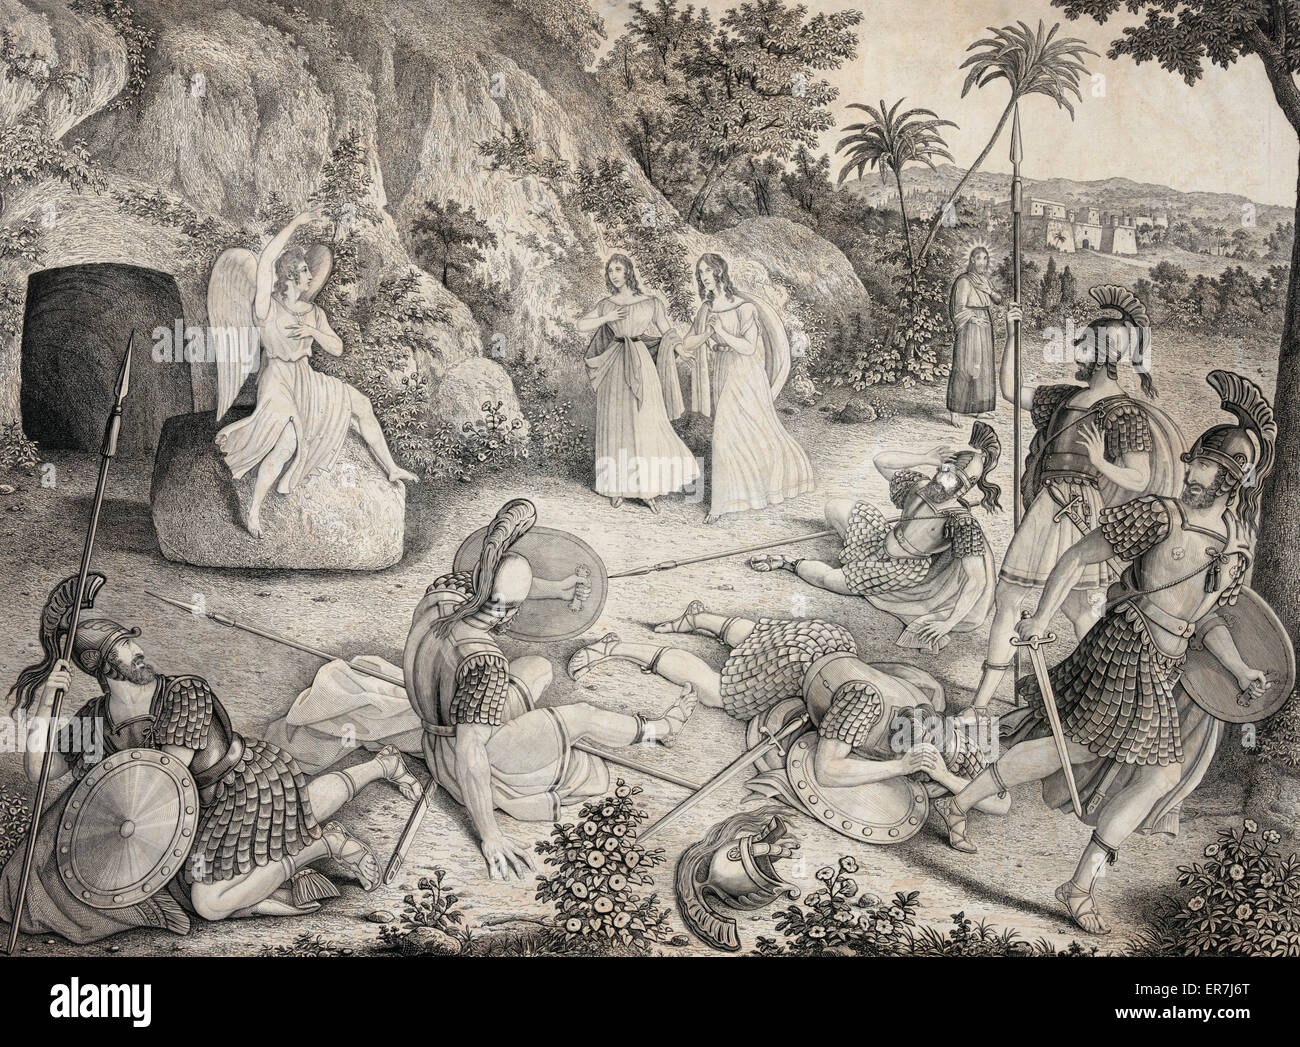 The resurrection of Jesus Christ. Date c1835 May 1. - Stock Image